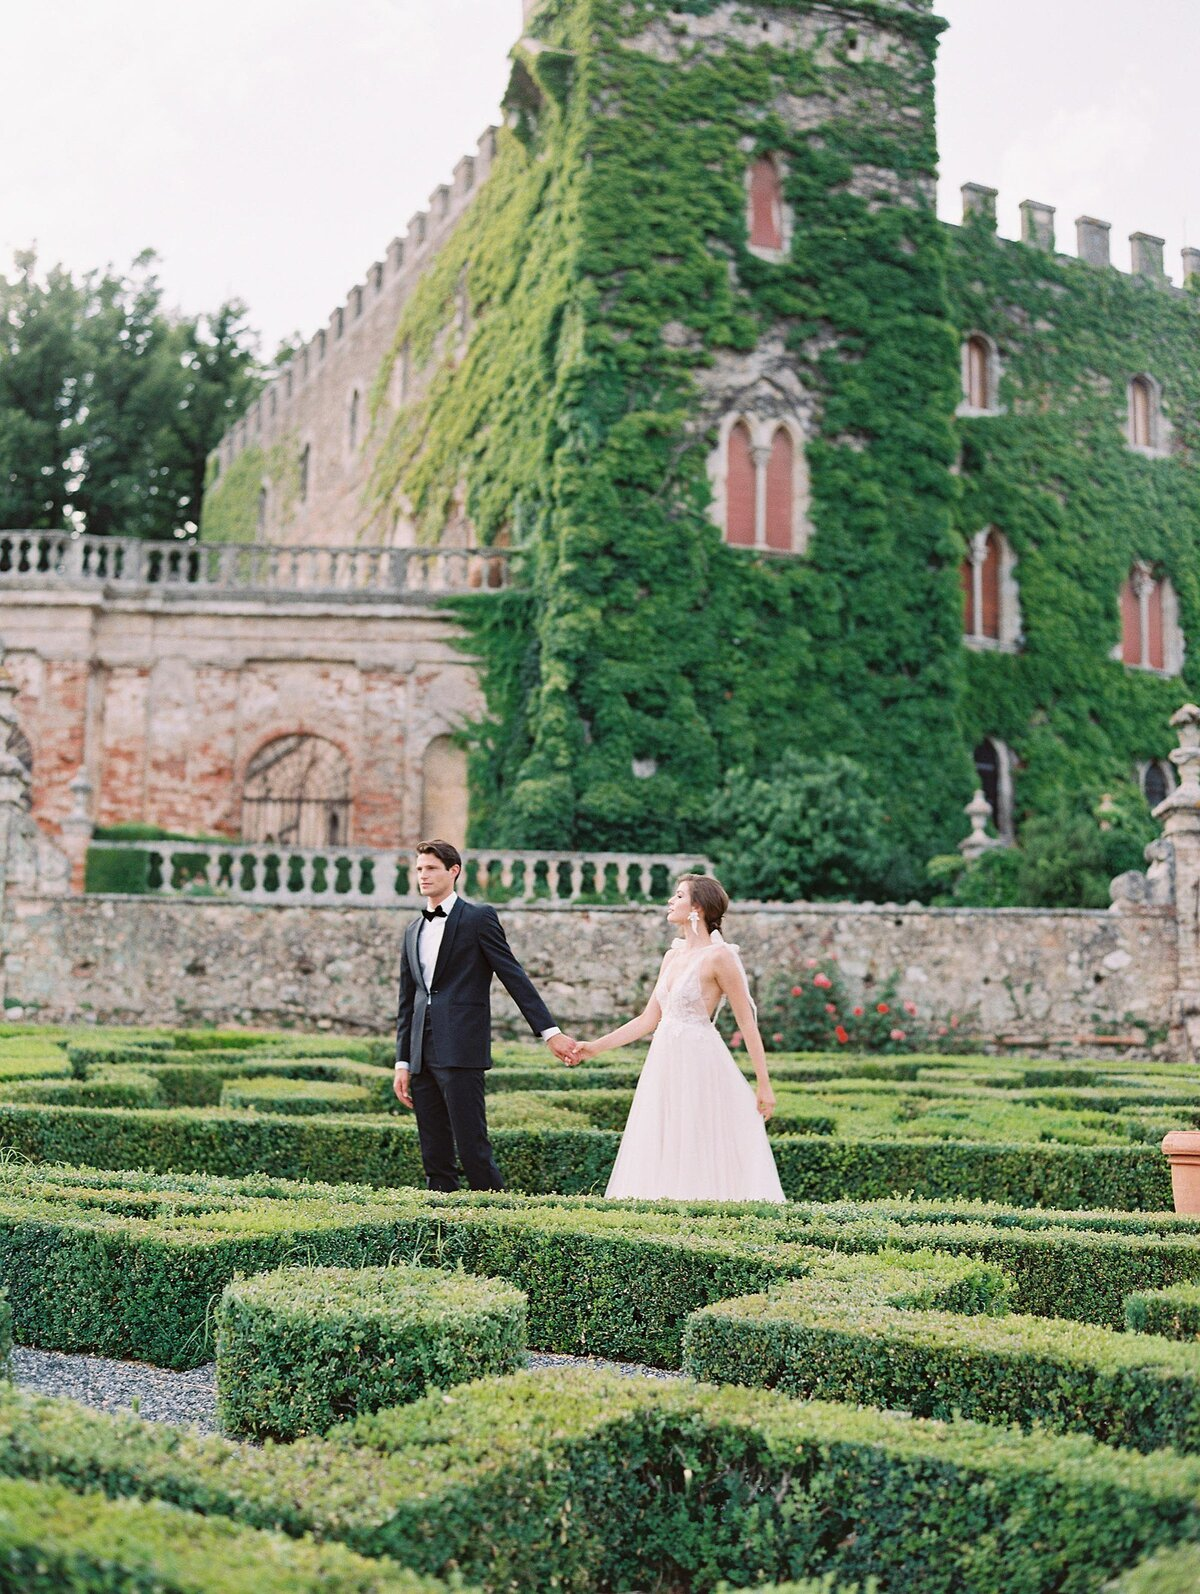 NKT-Events_Wedding-Inspiration-Editorial_Castello-di-Celsa_0463